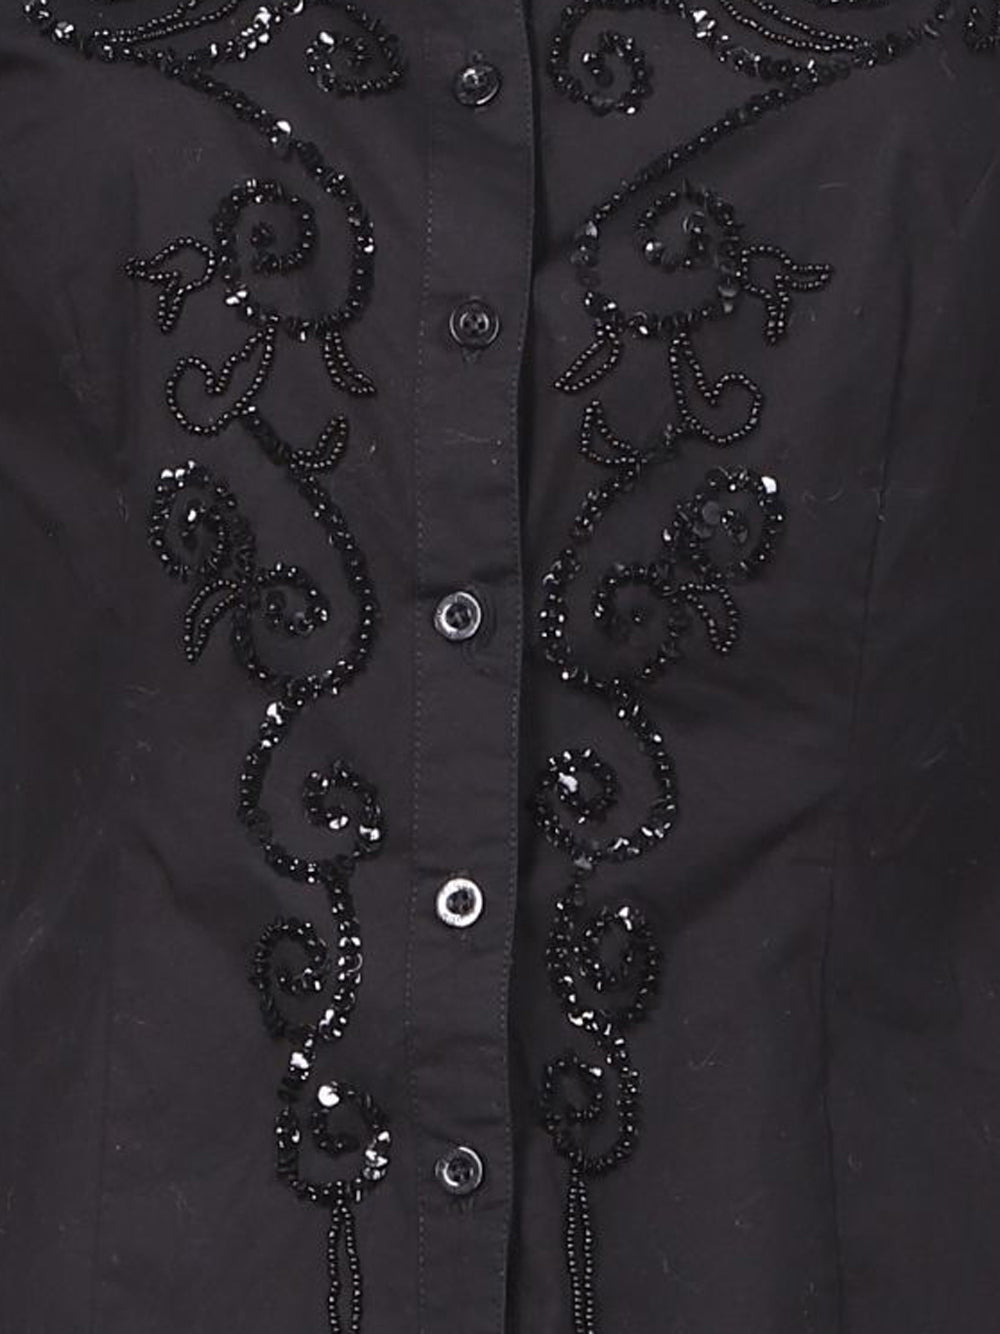 Detail photo of Preloved Bloom Black Woman's shirt - size 10/M